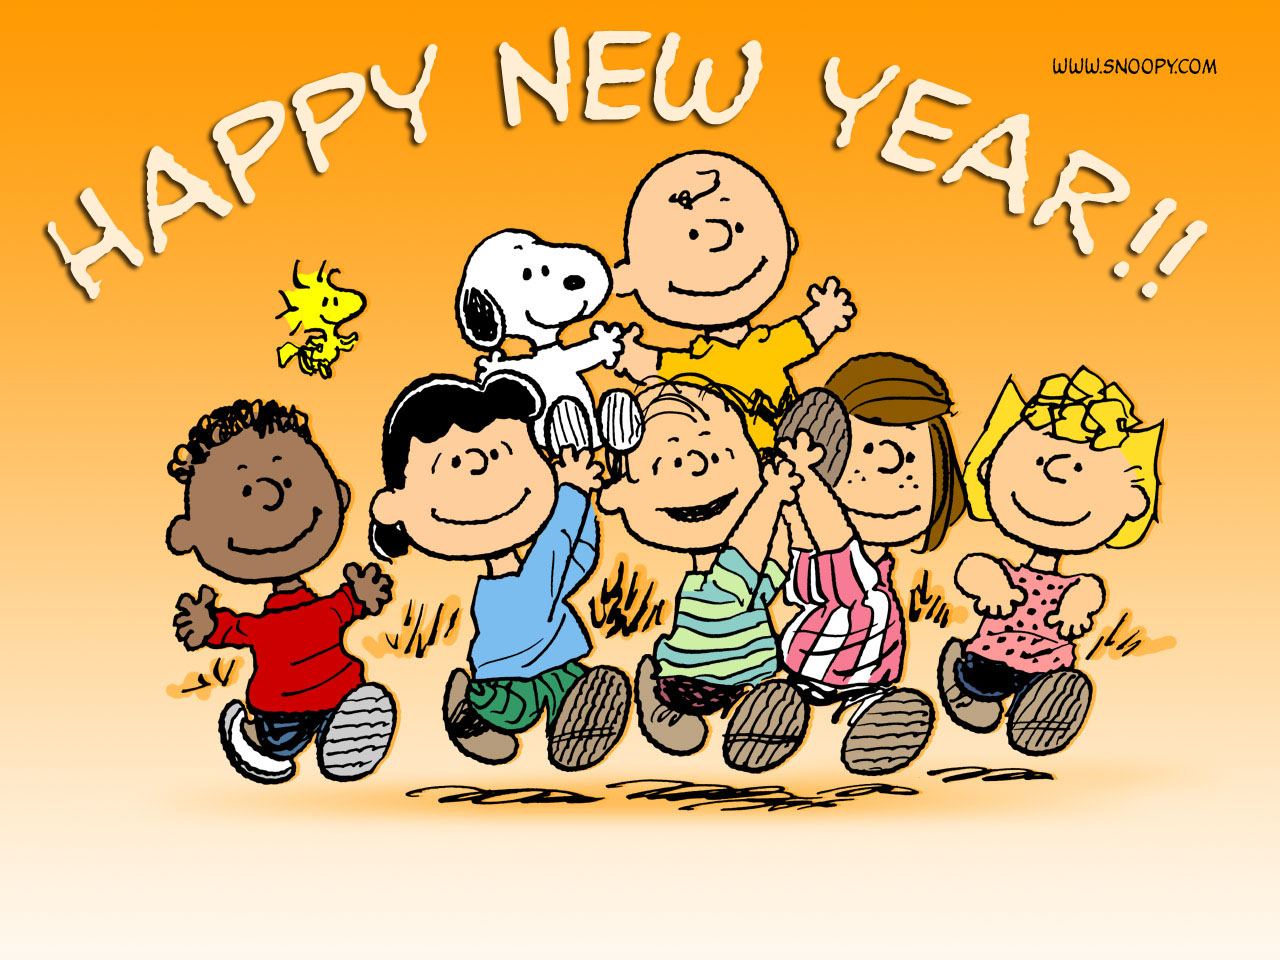 Happy New Year Charlie Brown Quotes: Shells: New Year Greetings